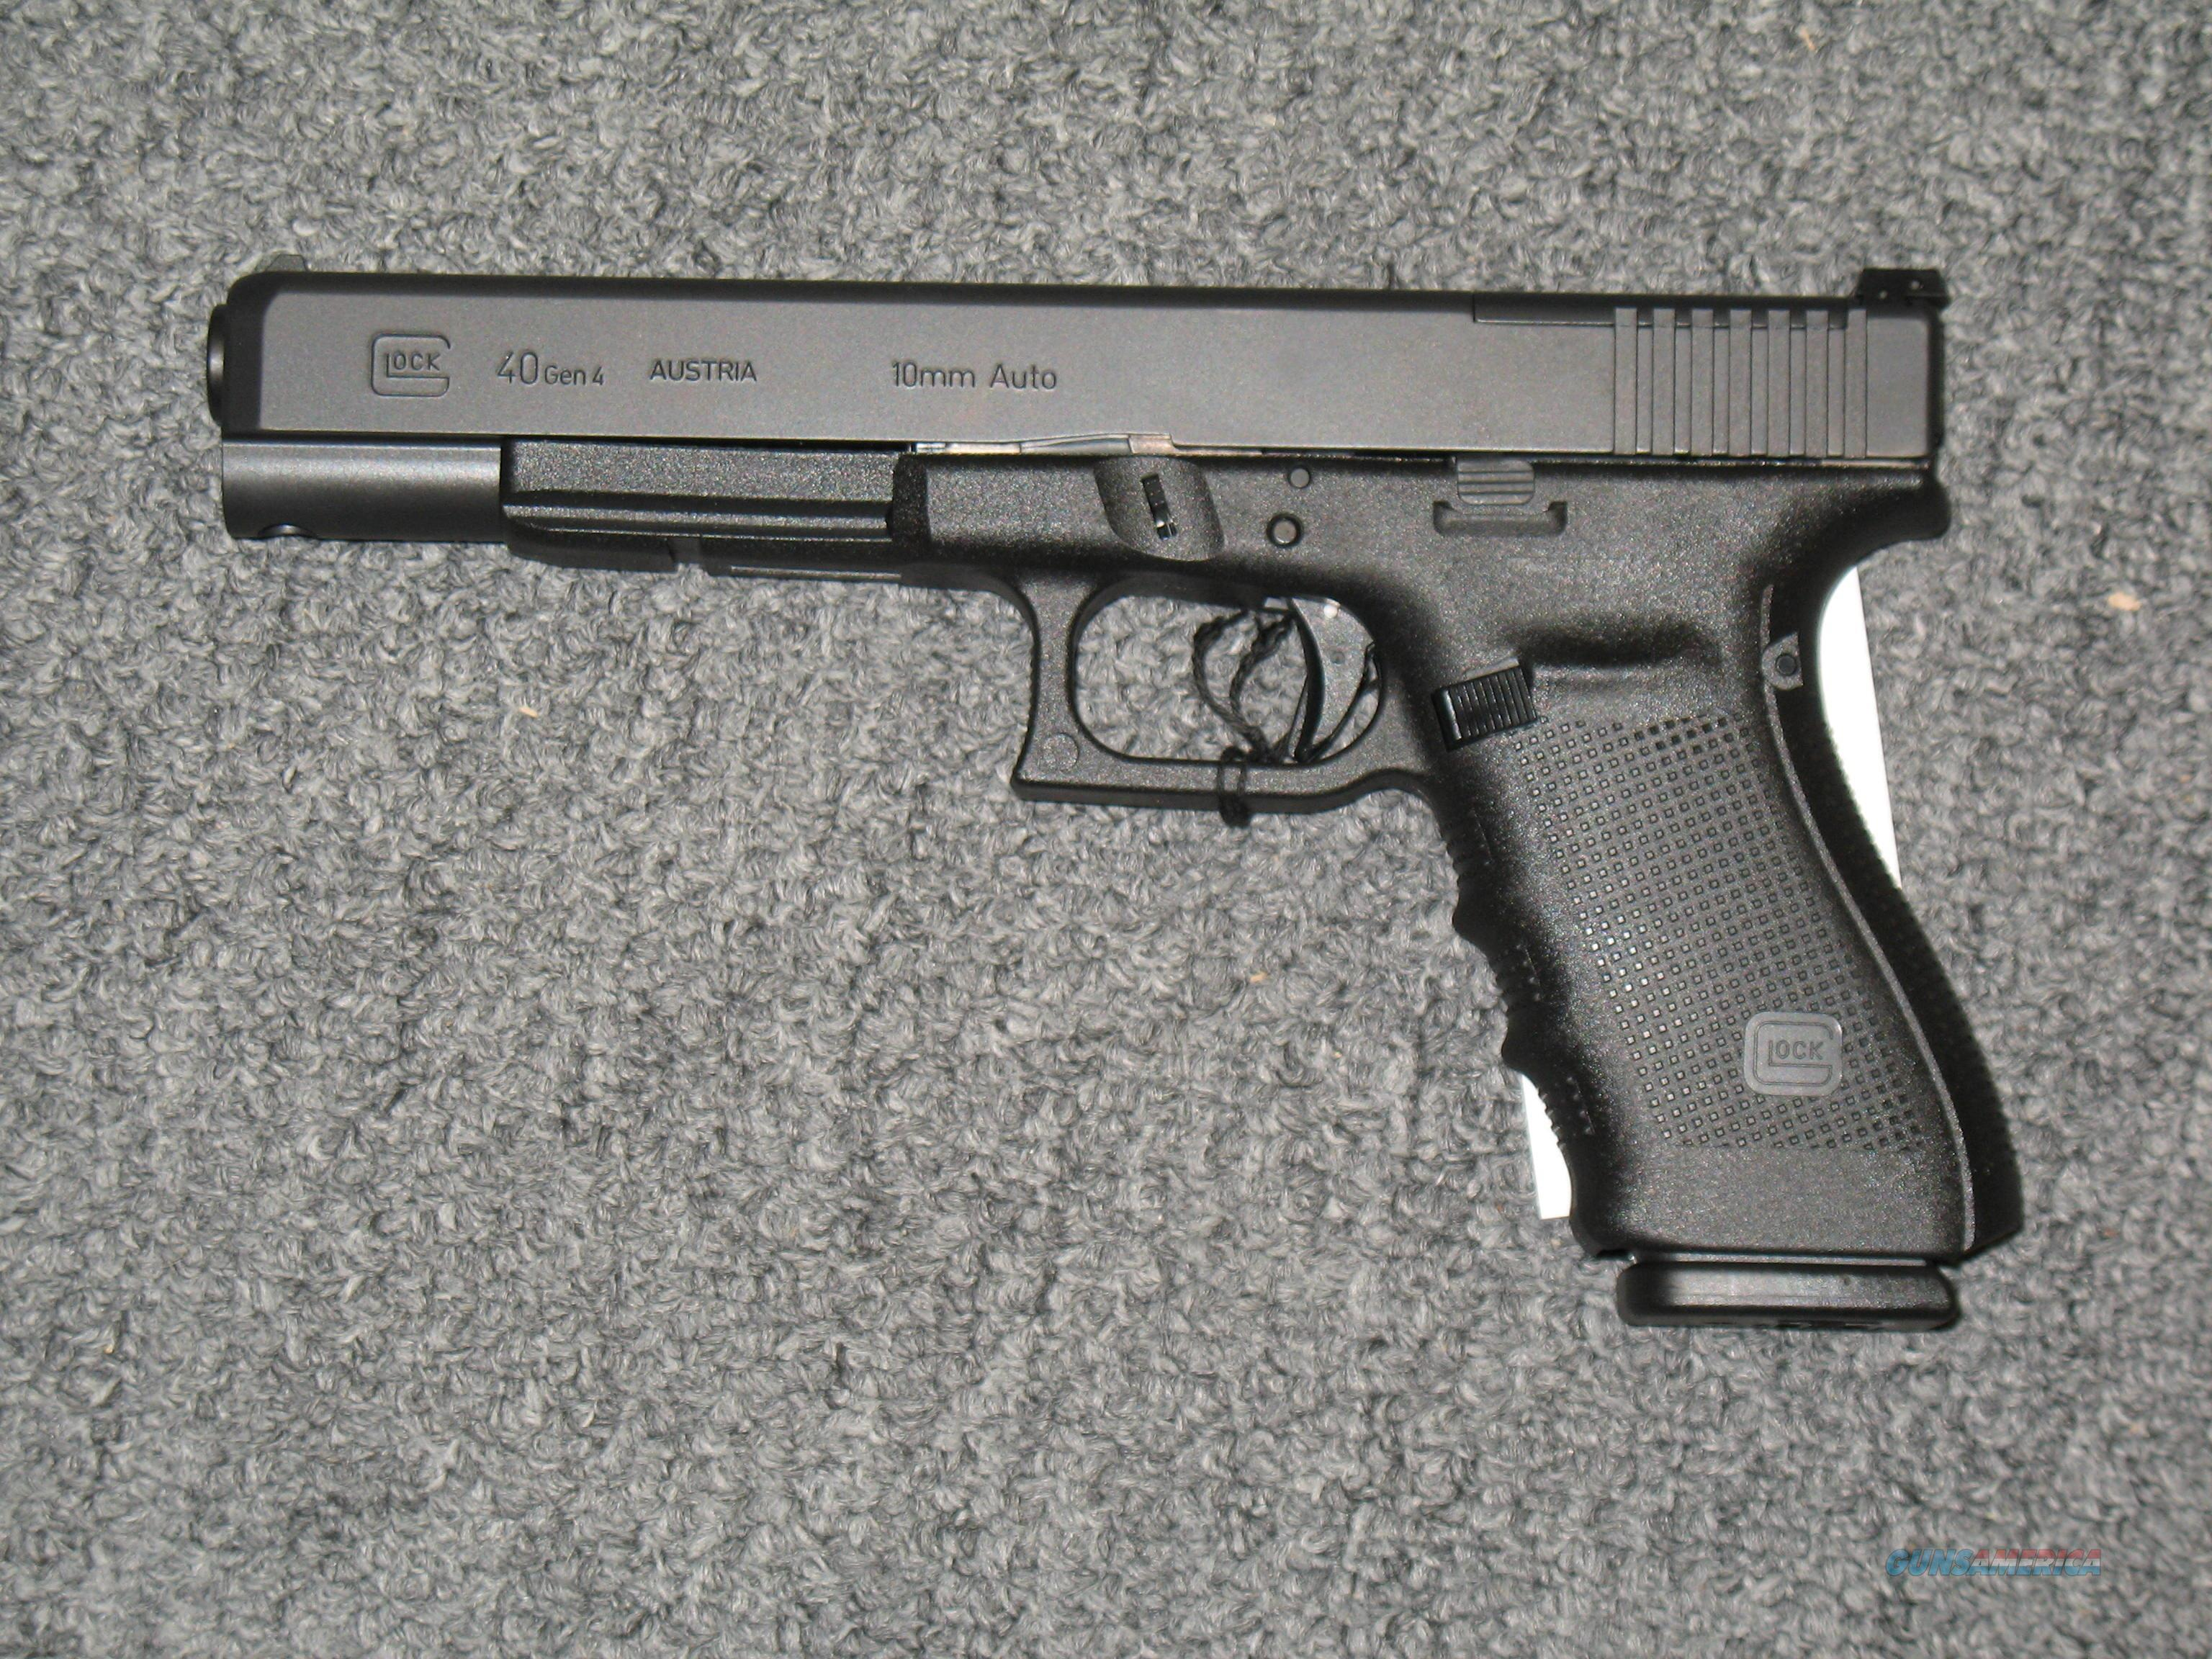 Glock 40 Gen 4 MOS, with three 15rd mags JUST RELEASED!!!    Guns > Pistols > Glock Pistols > 20/21